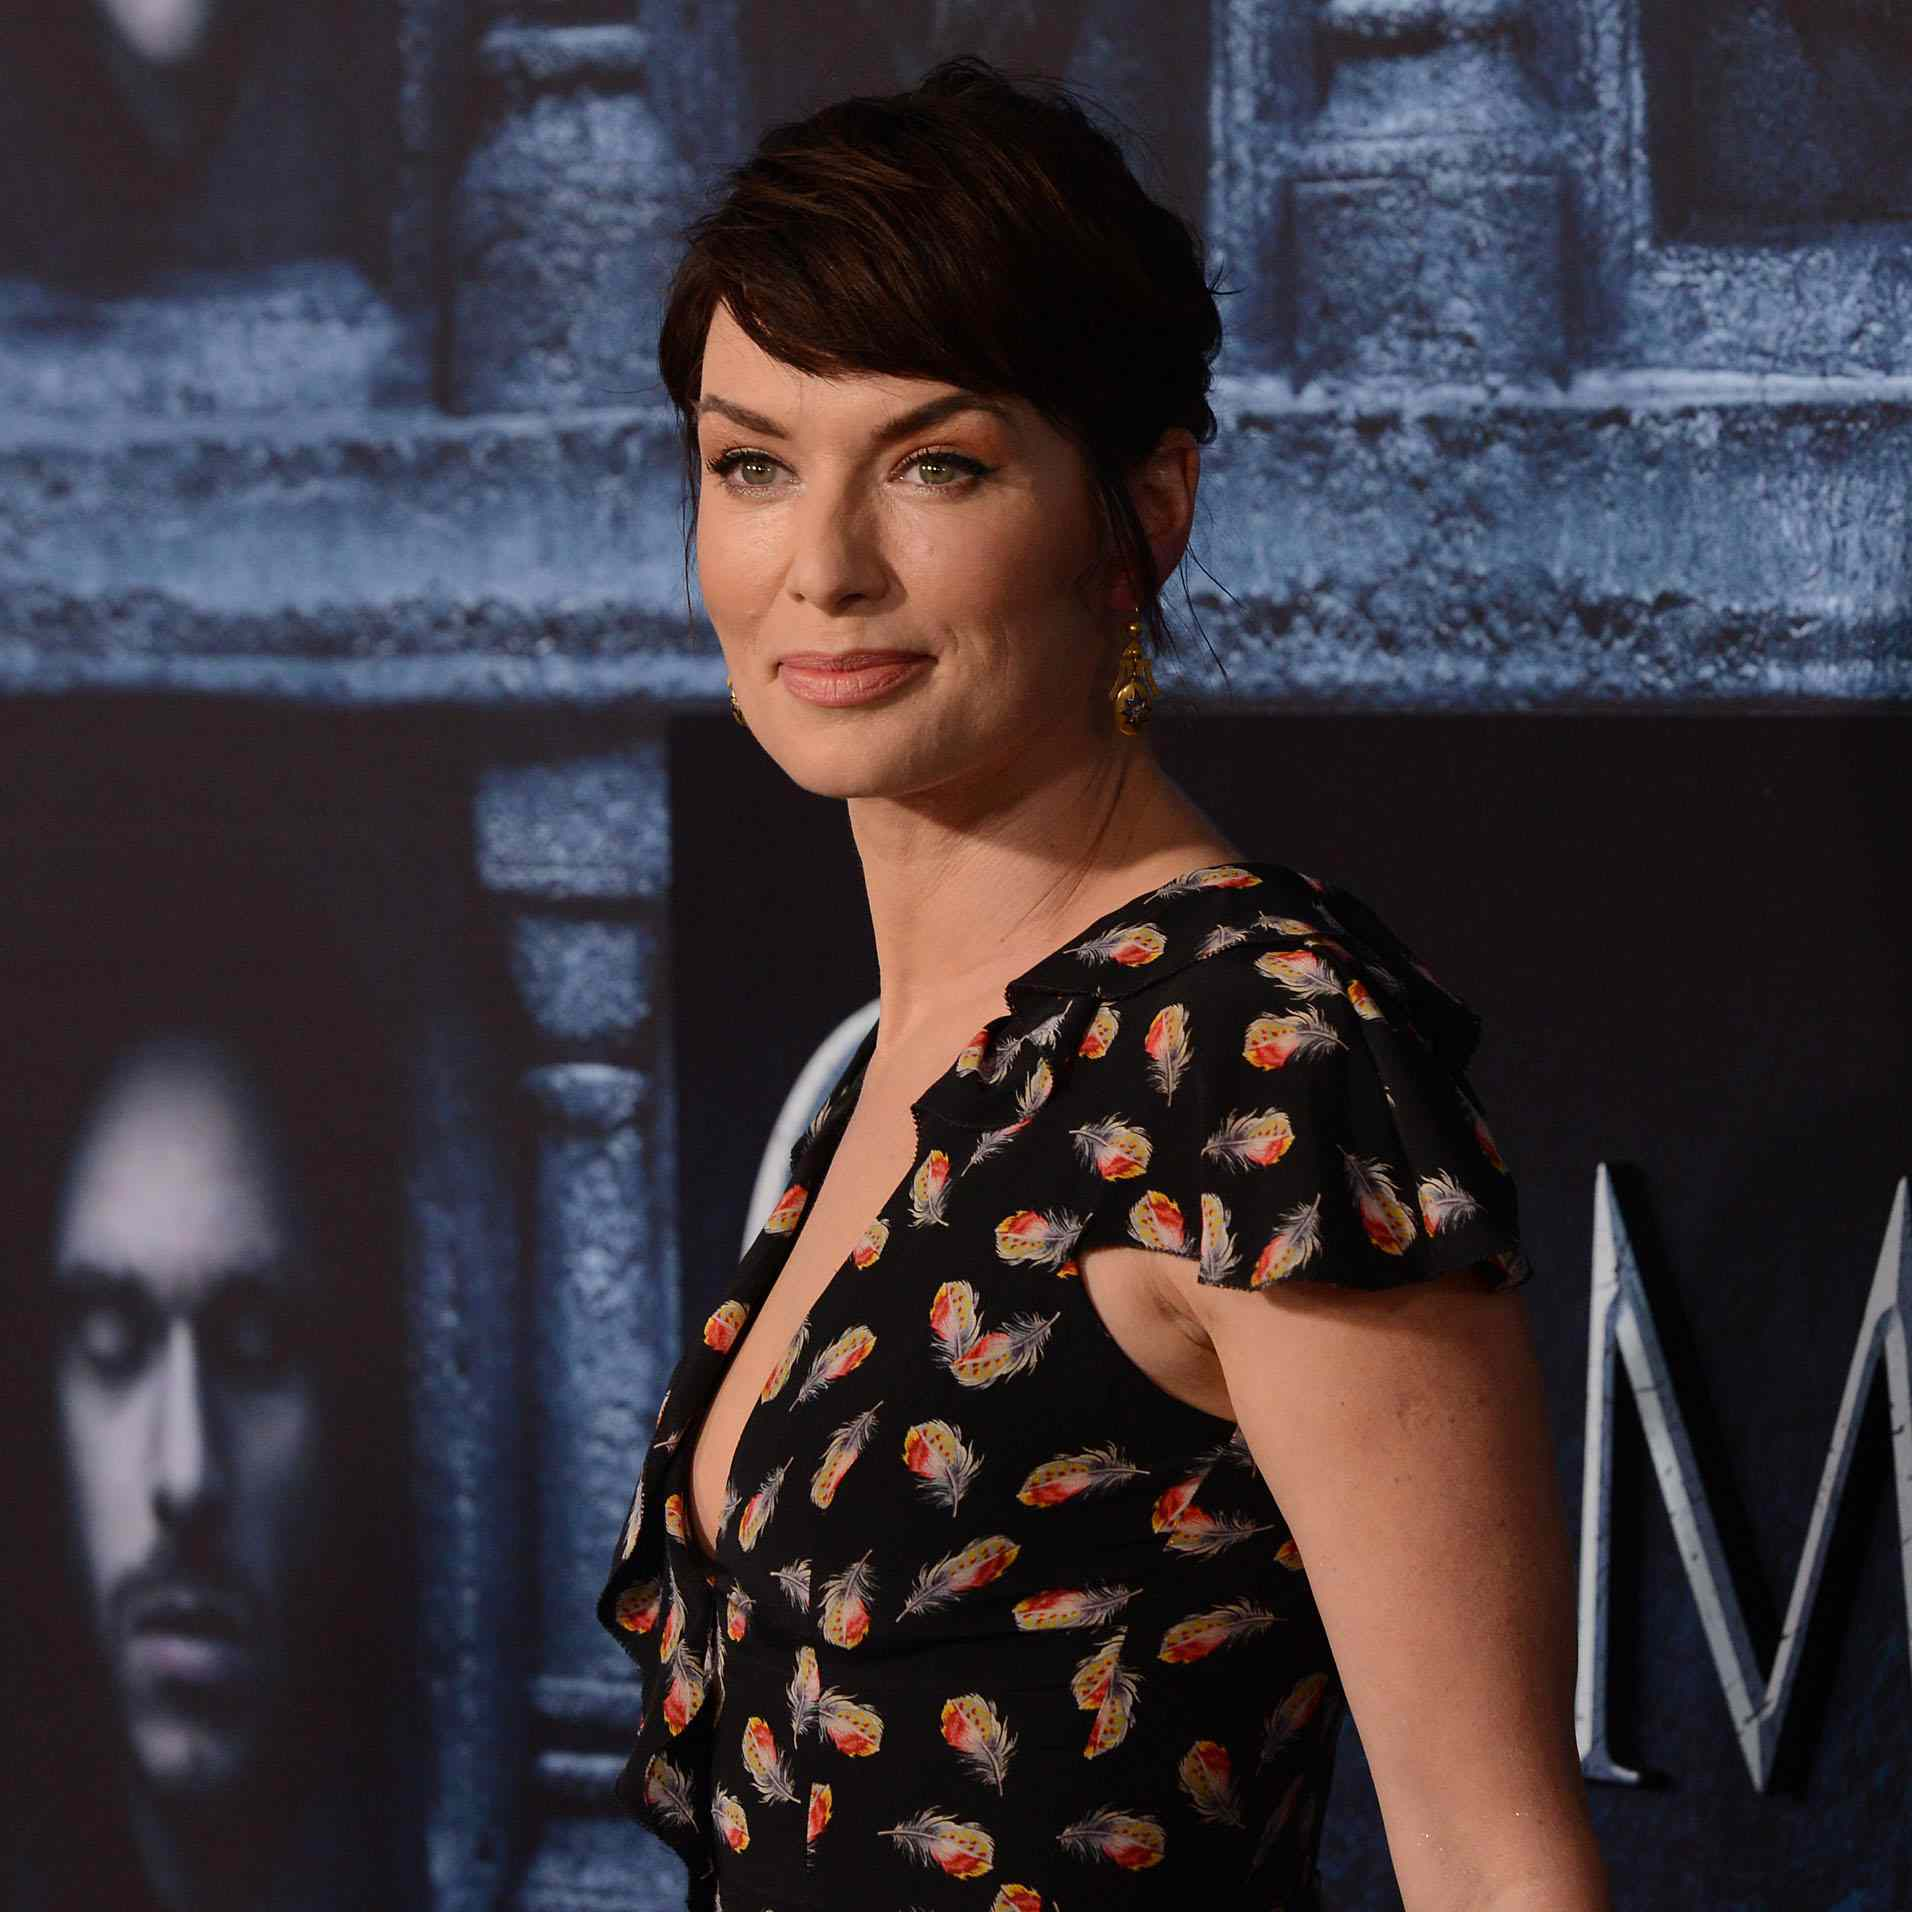 Who is lena headey dating now